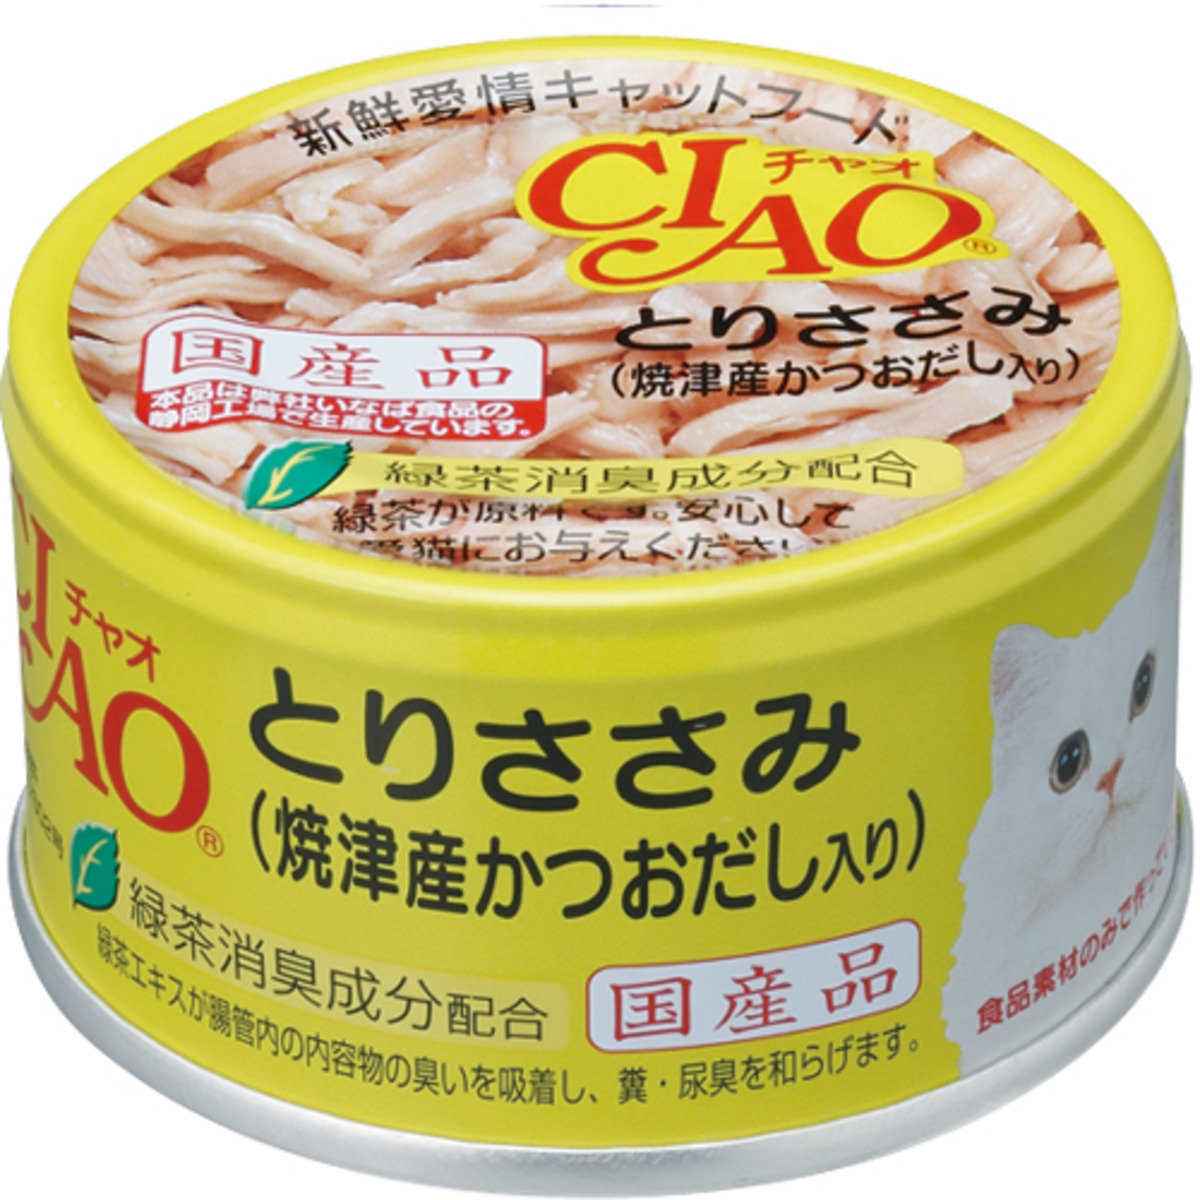 CIAO Chicken with green tea 85g C-60 (06095) (Import from Japan)